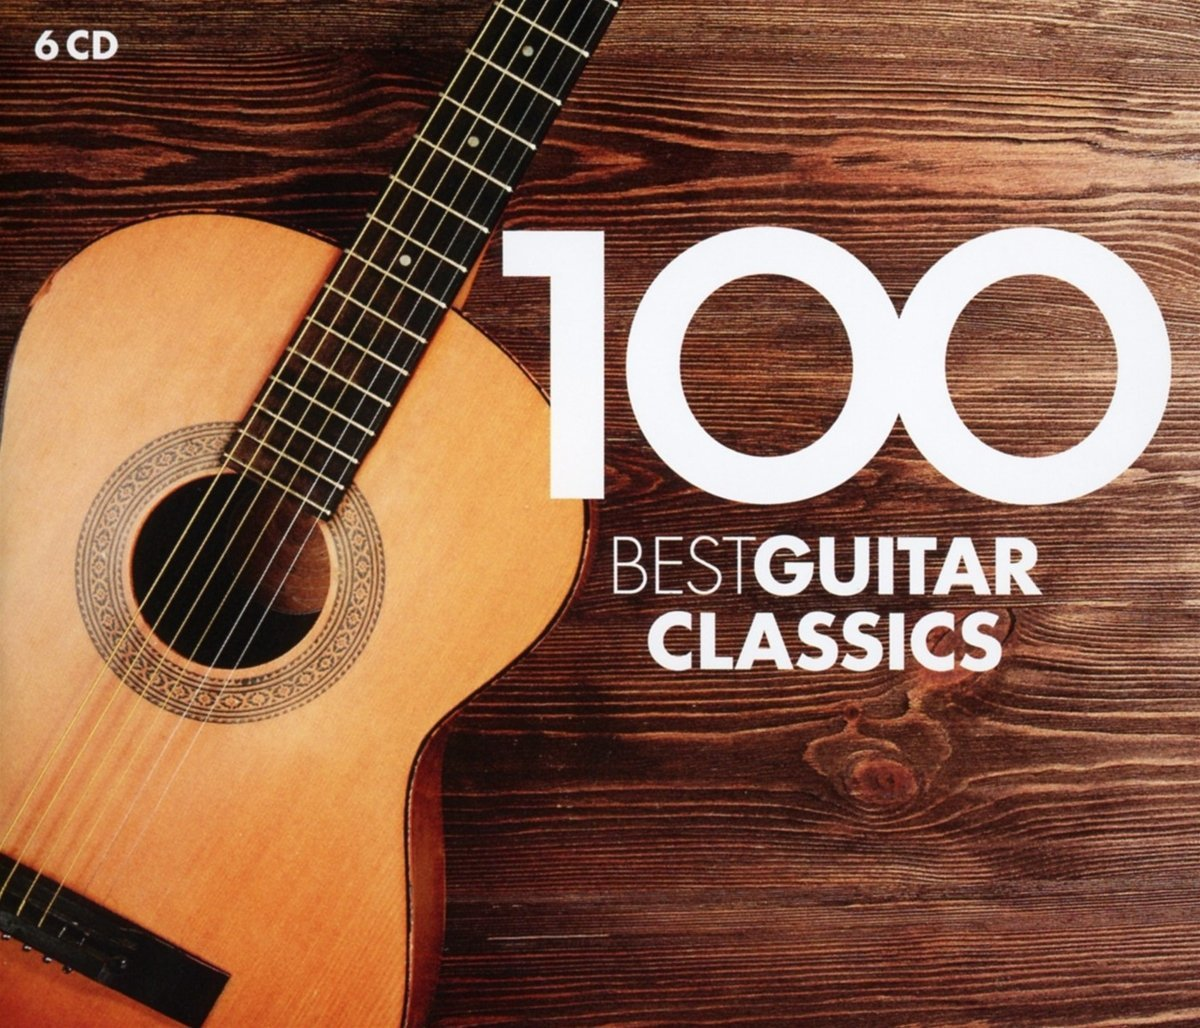 100 Best Guitar Classics: Various Artists: Amazon.es: Música